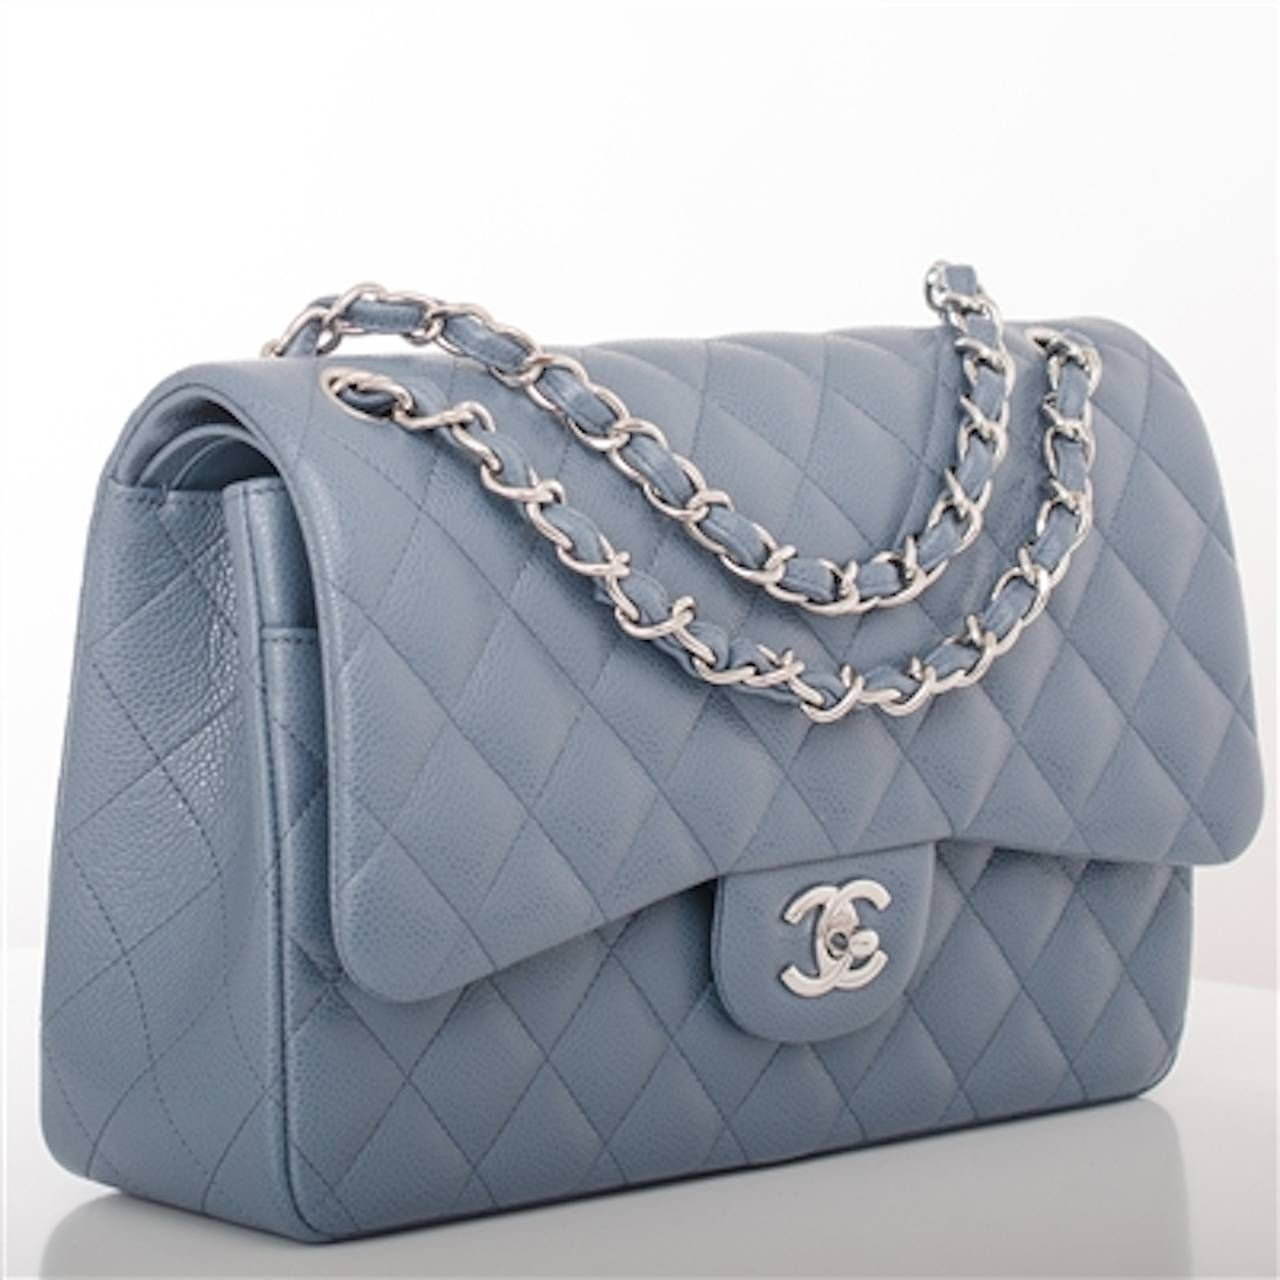 b3e3e150ecb8 Chanel Blue Quilted Caviar Jumbo Classic 2.55 Double Flap Bag ...